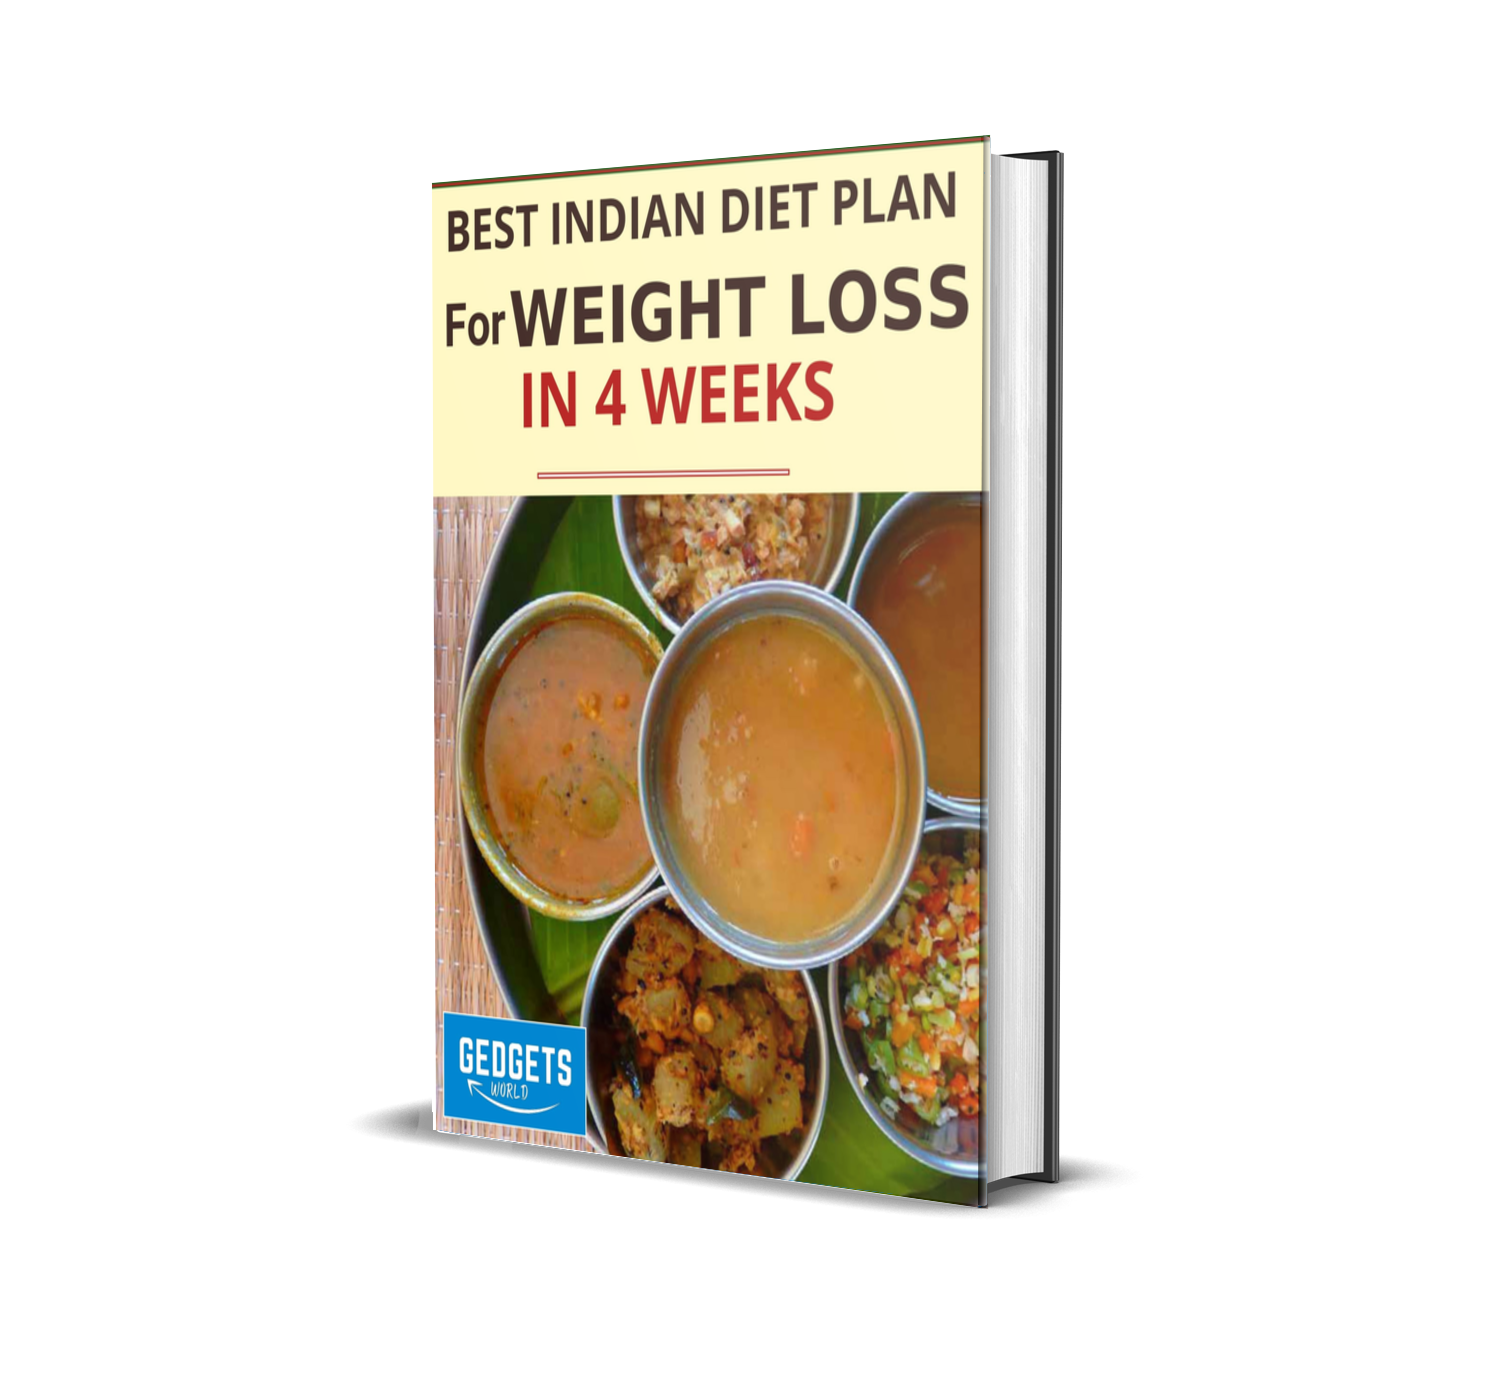 Best Indian Diet Plan for WEIGHT loss in 4 weeks